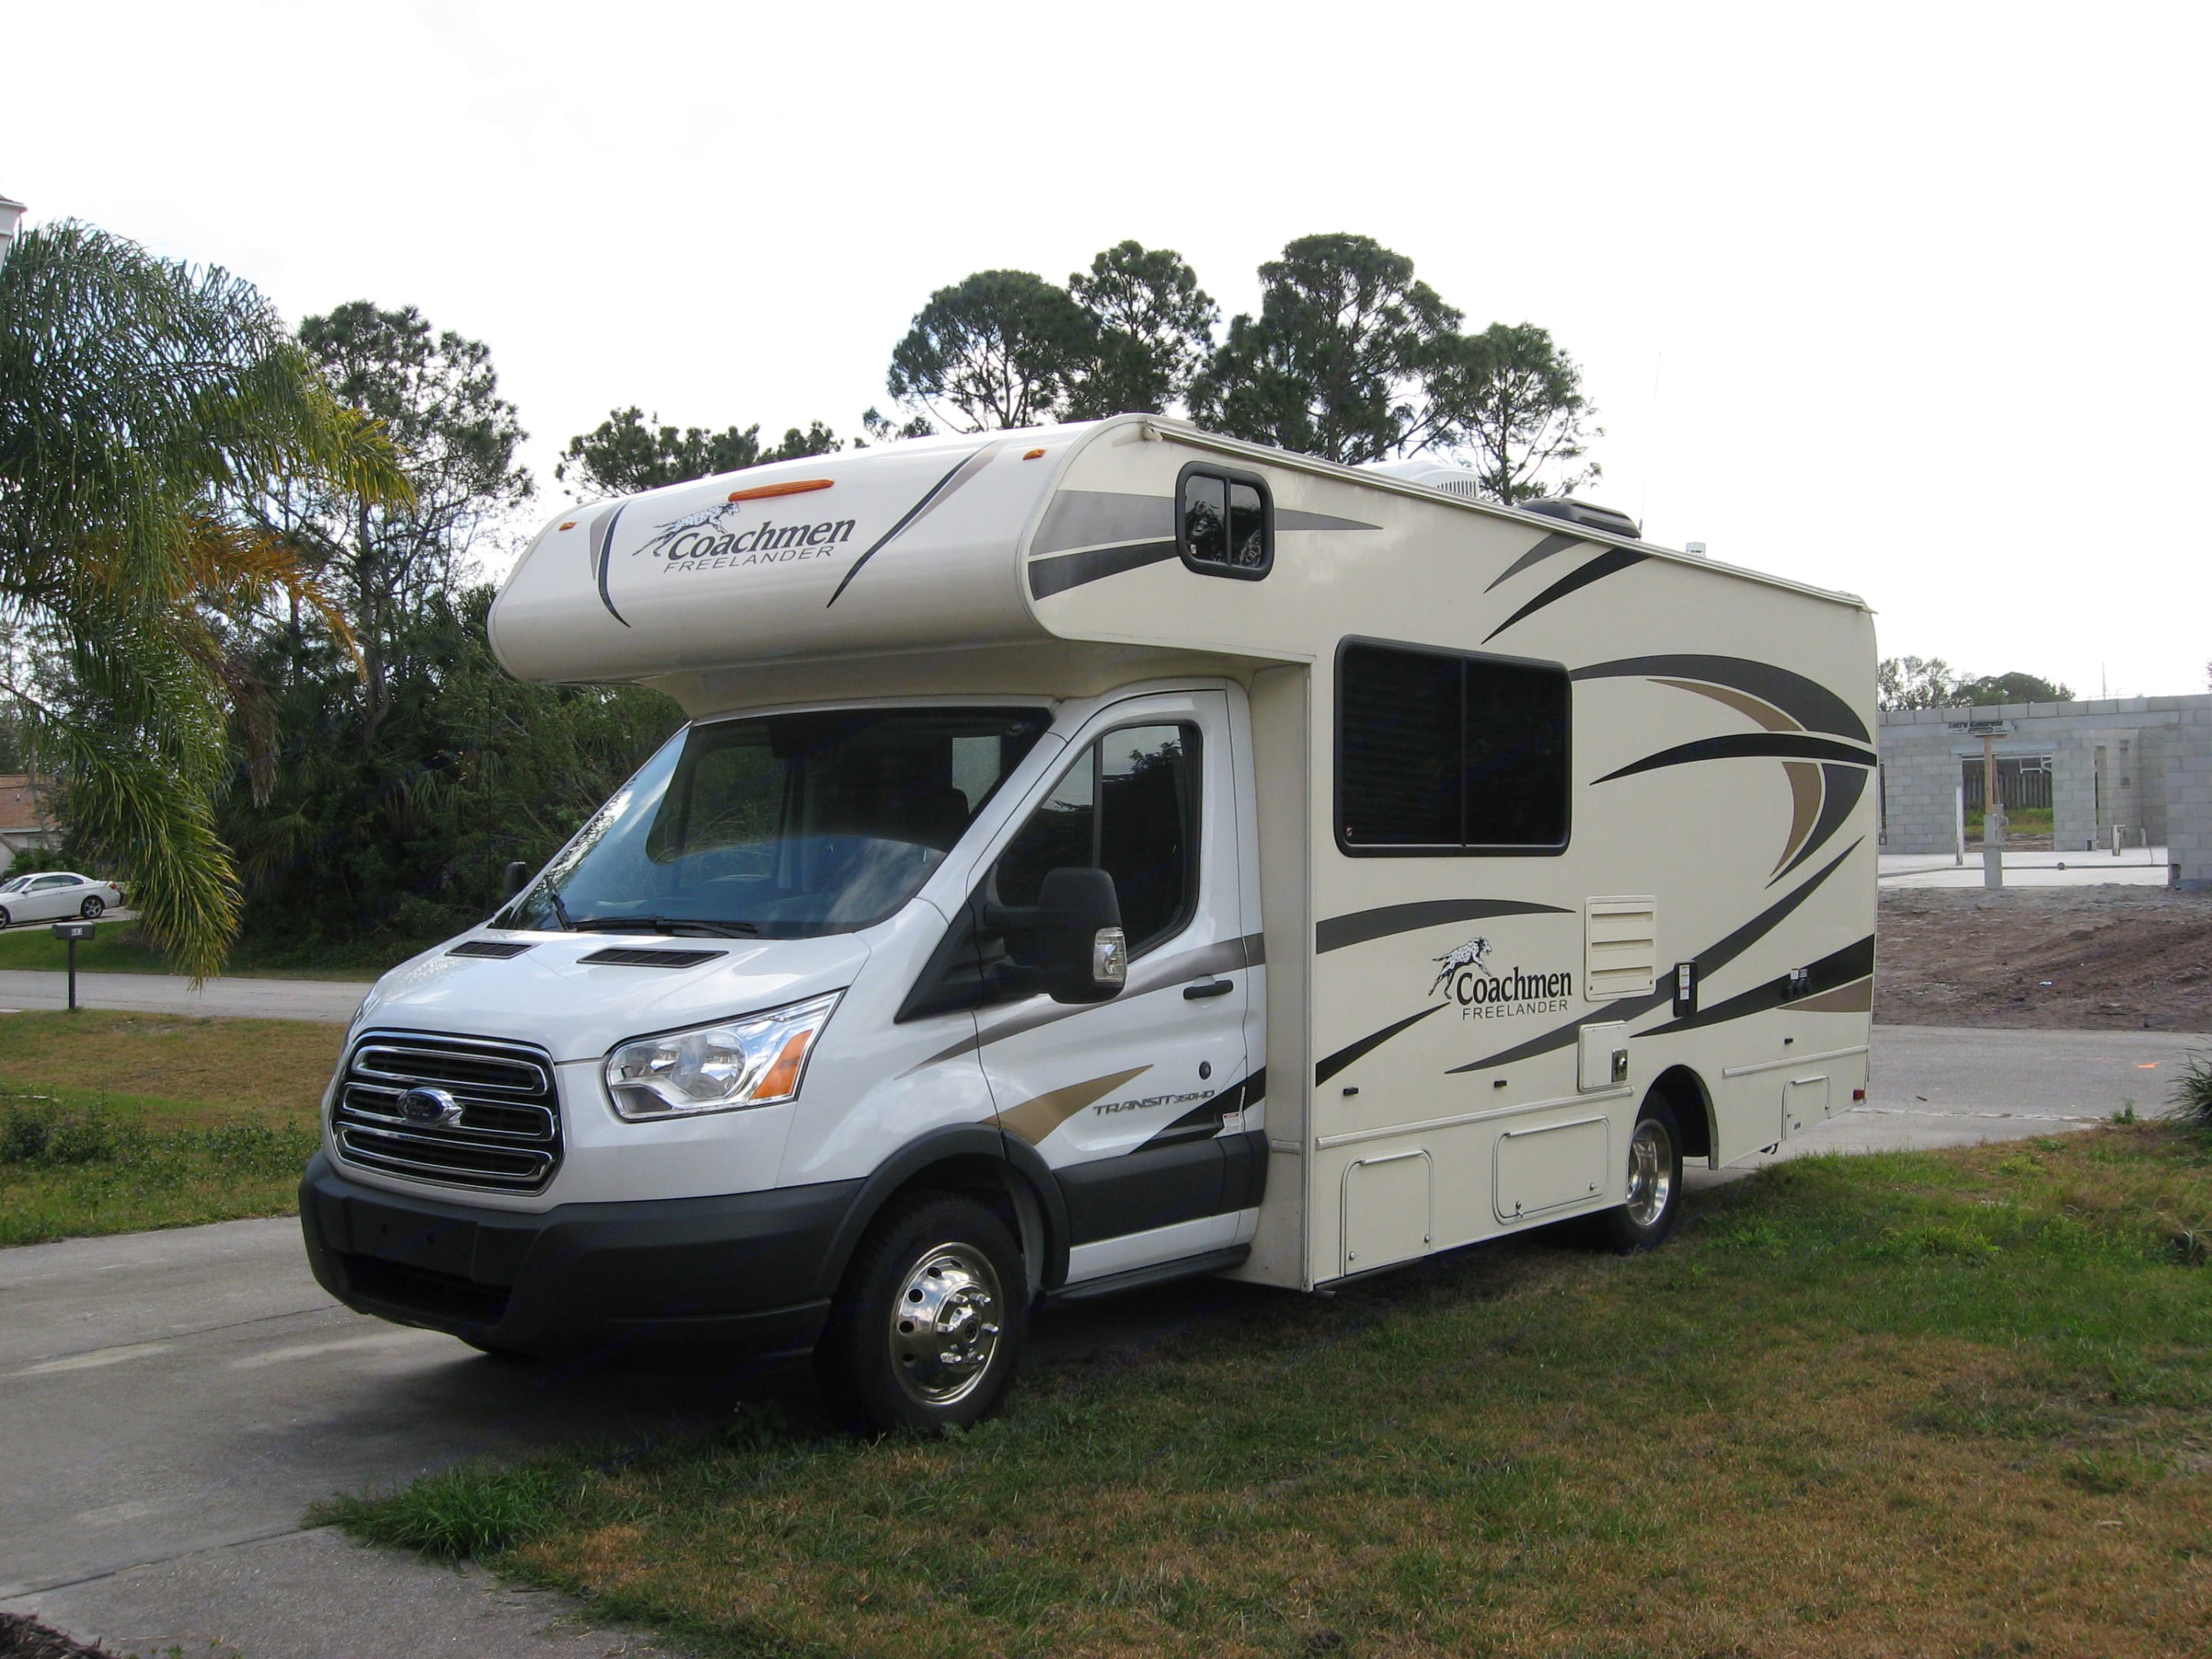 Here's a sporty RV that will accommodate a family for fun in the great outdoors or a couple for a quiet weekend away.. Coachmen Freelander 2017